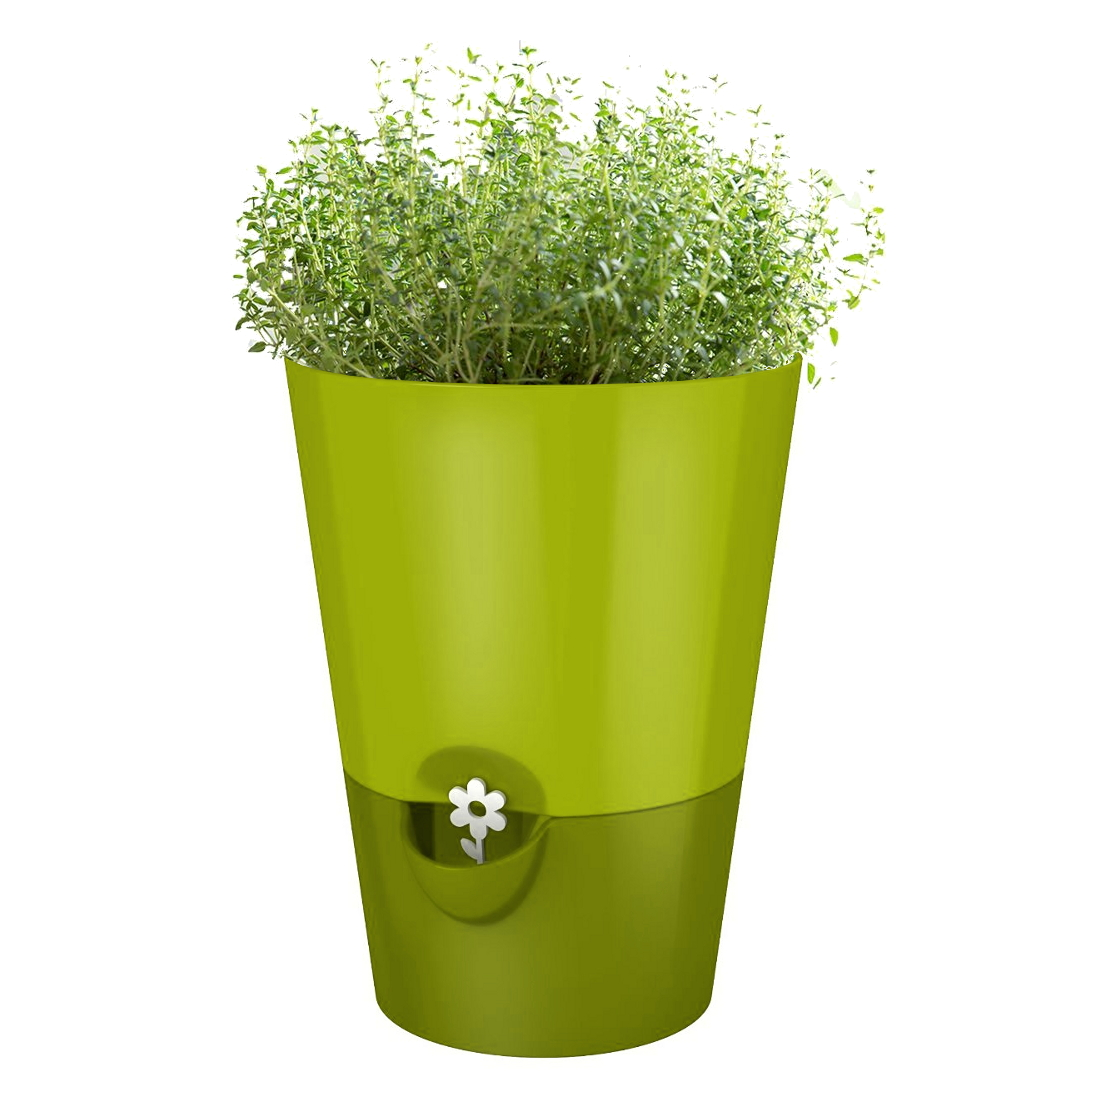 Emsa Smart Planter Green 6.5 Inch Herb Grower